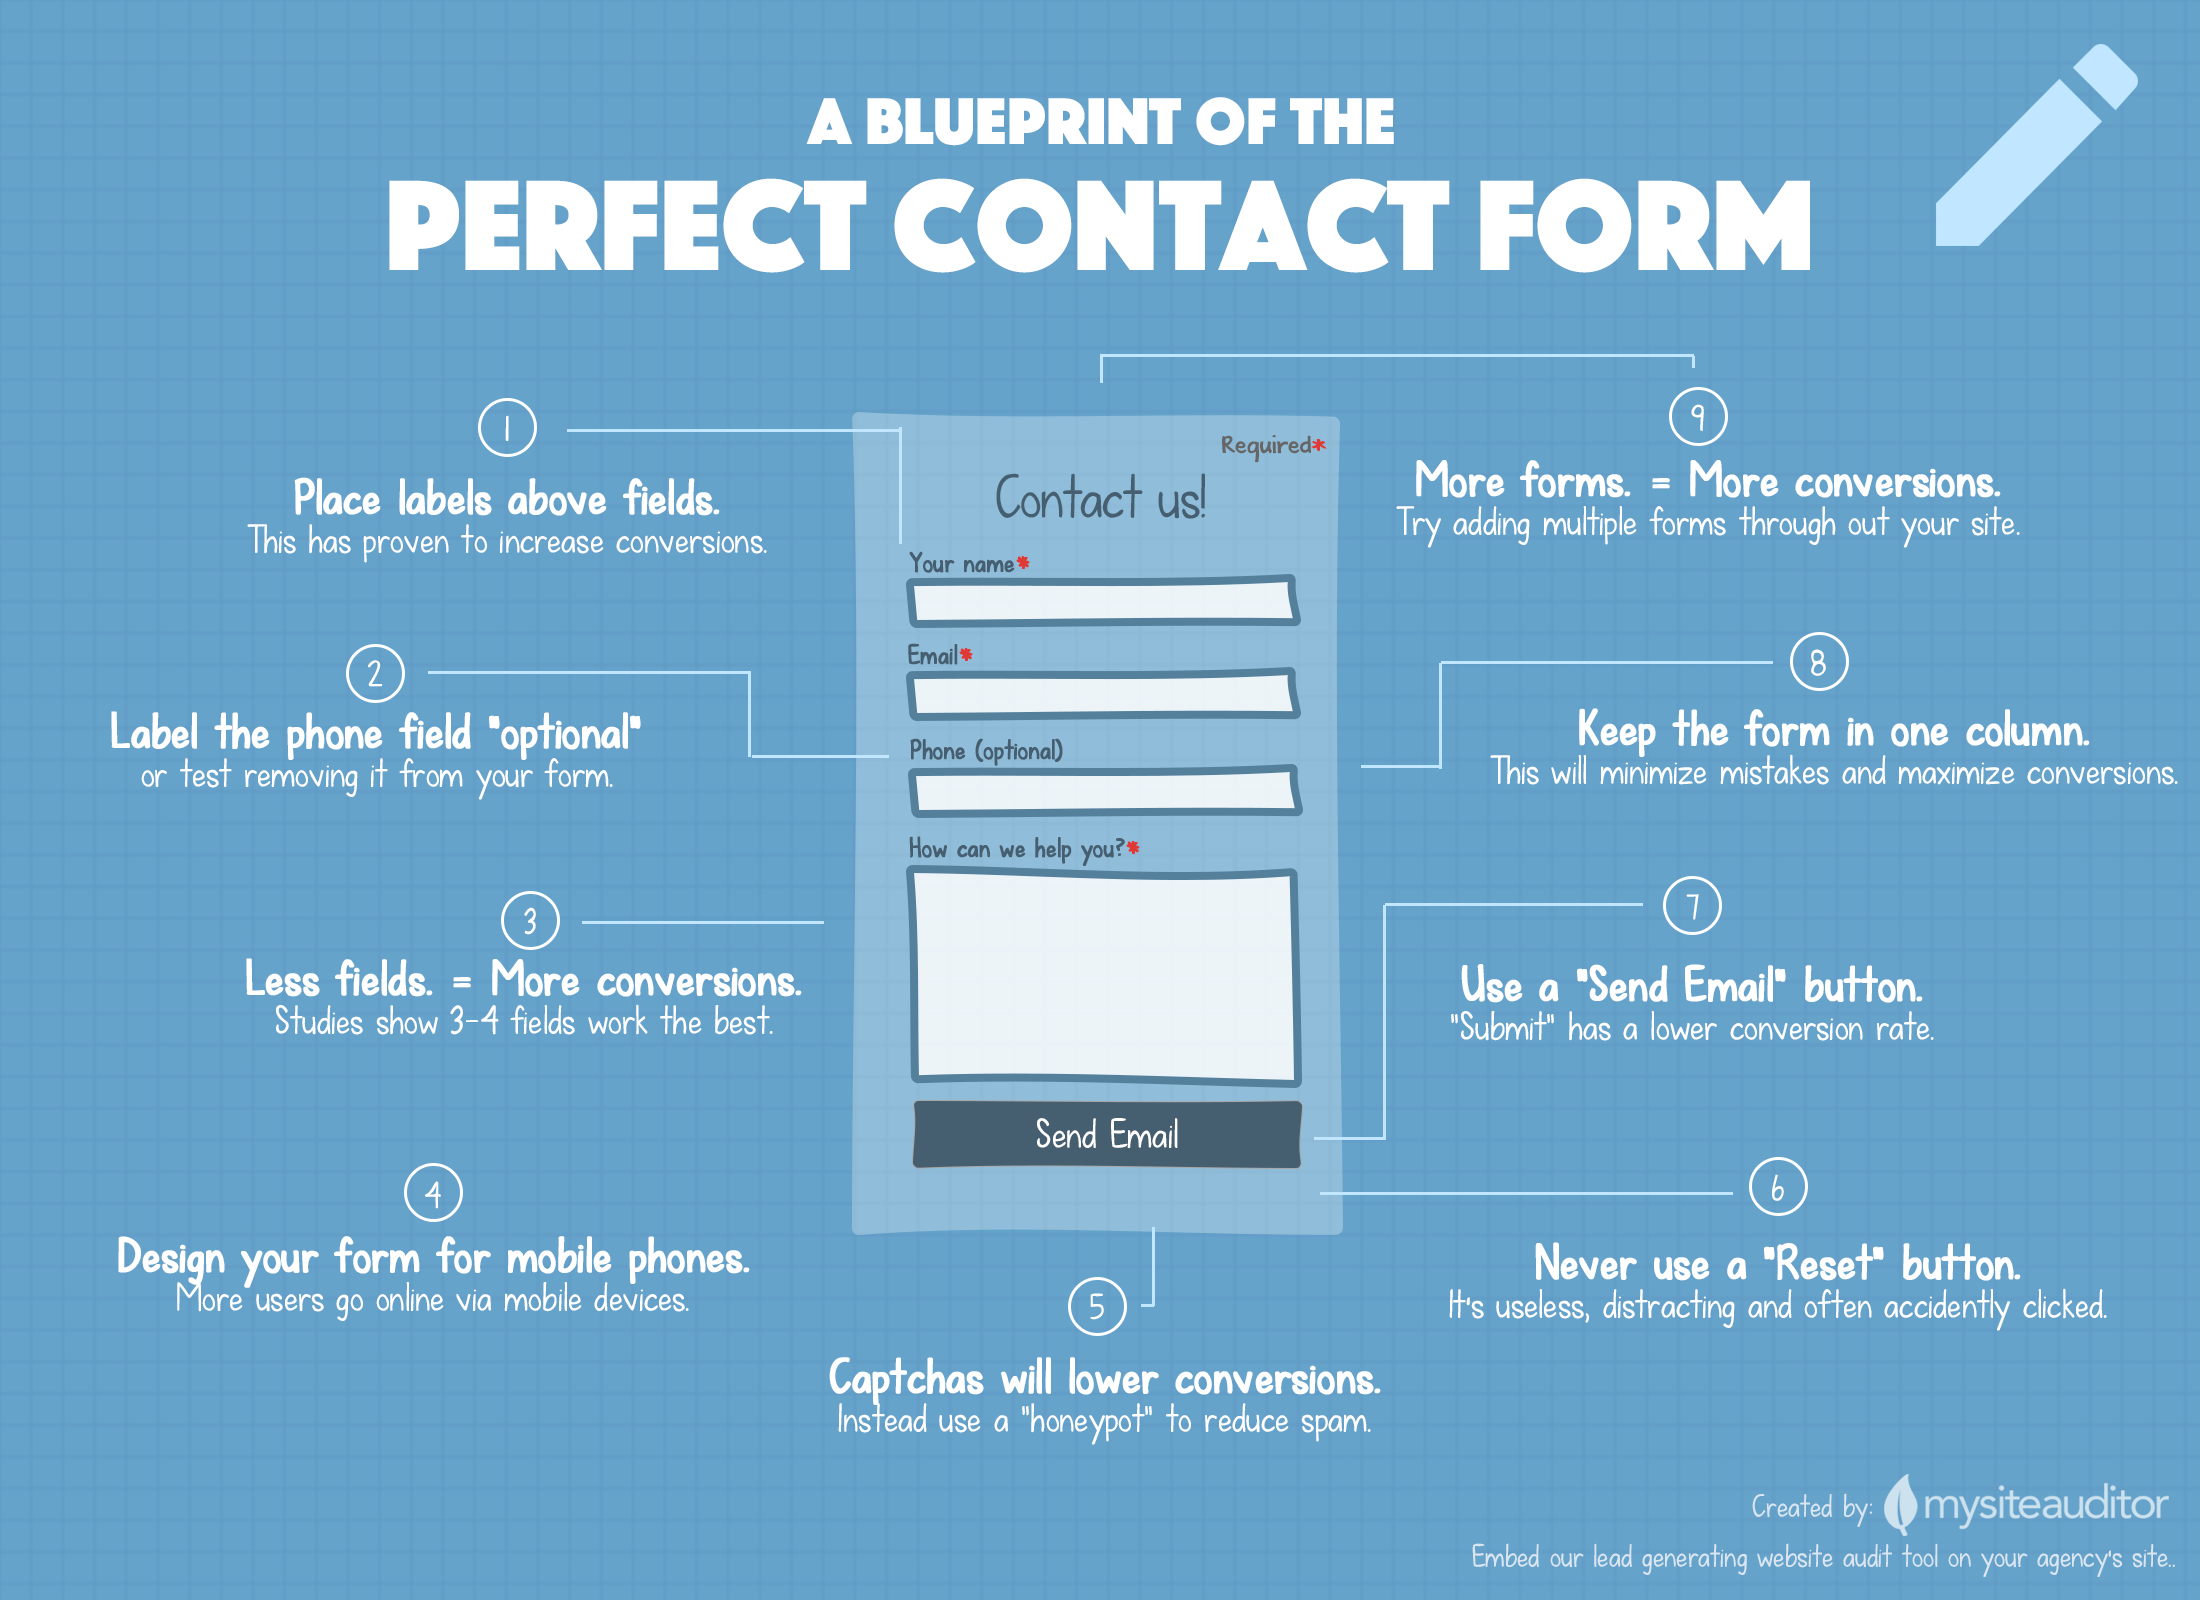 A blueprint of the perfect contact form infographic for Blueprint websites